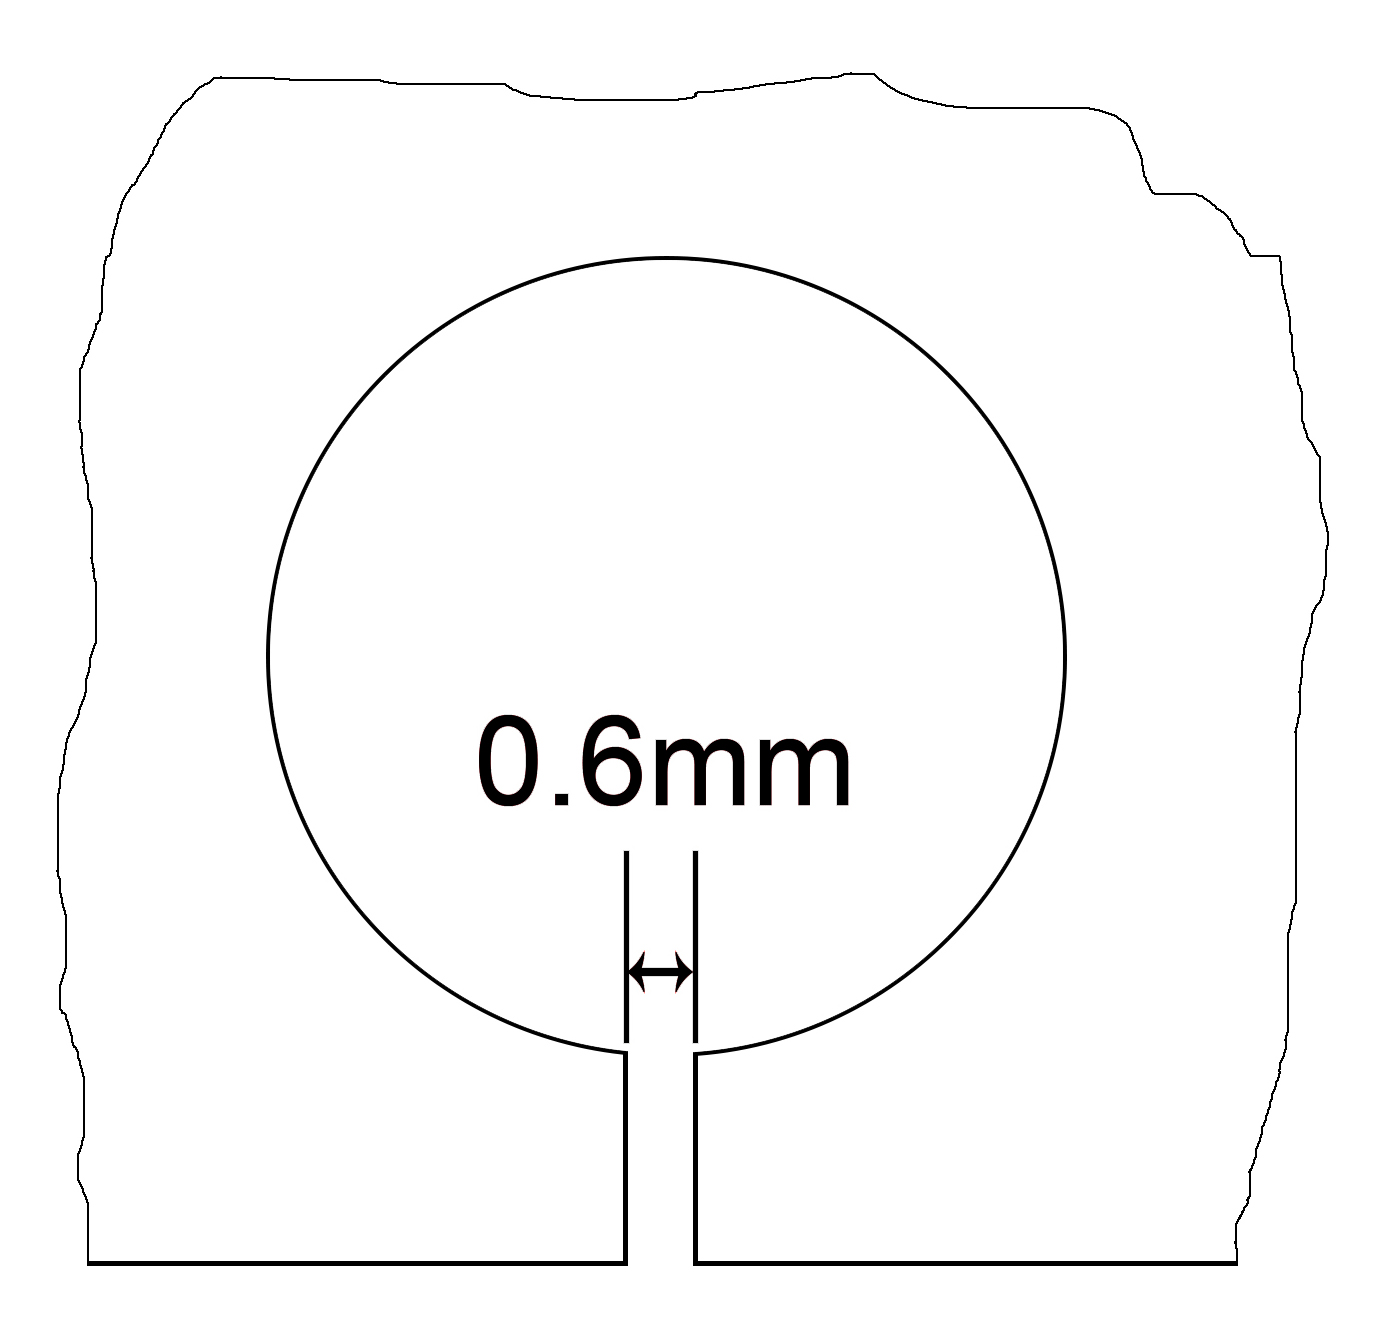 mechanical part with 0.6mm diameter